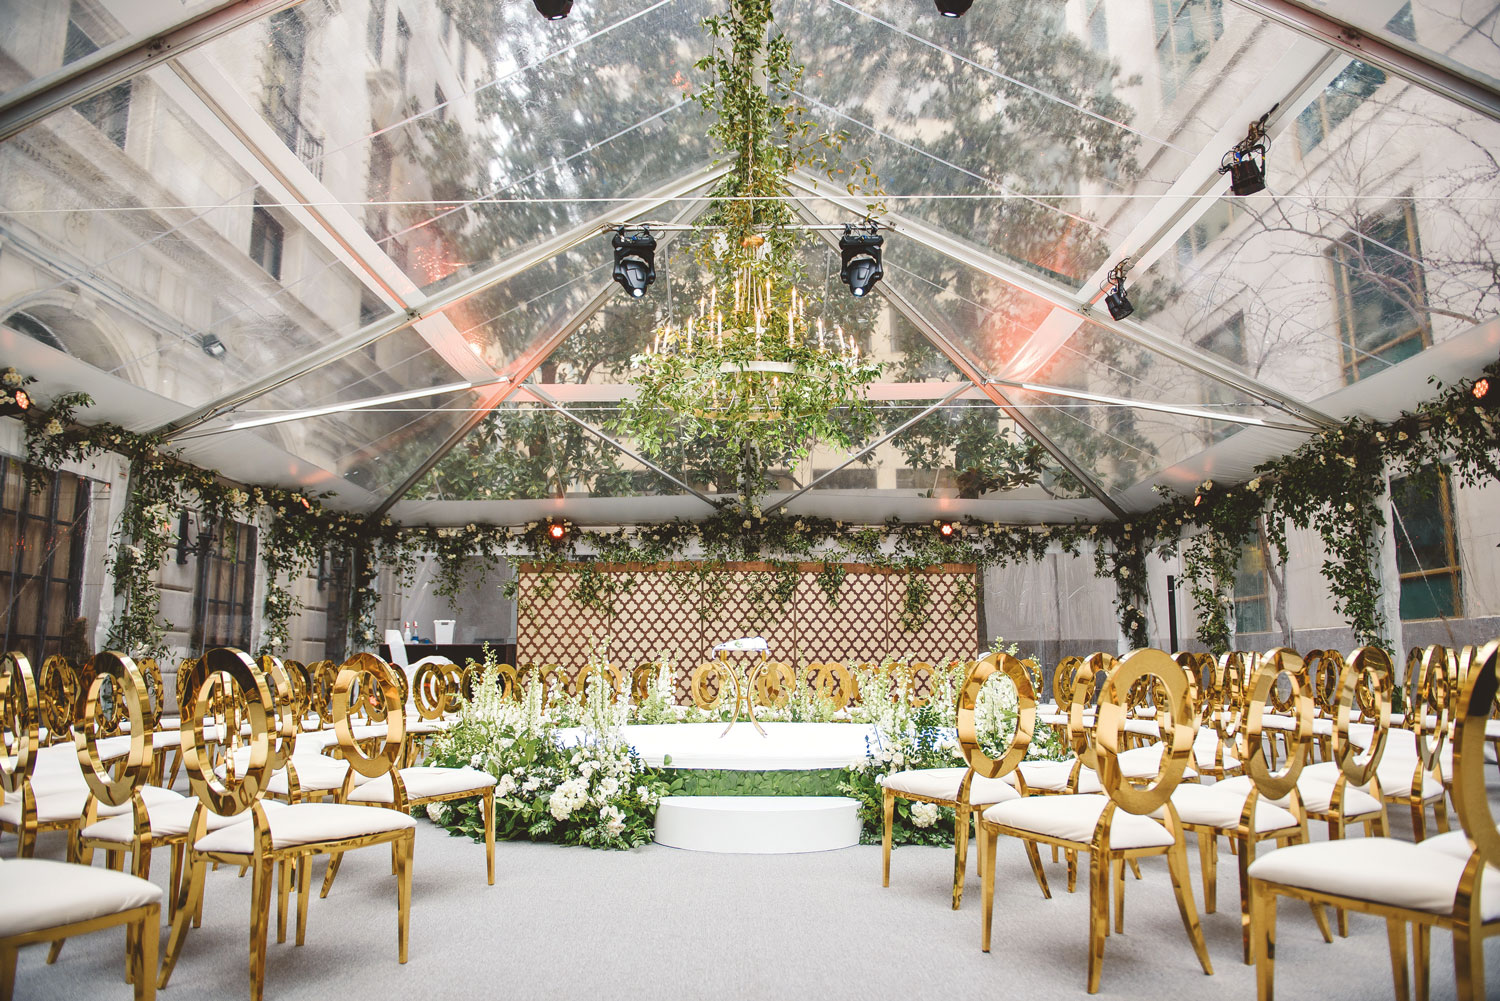 Inside Weddings magazine Spring 2019 issue pretty tented wedding ceremony greenery gold chairs